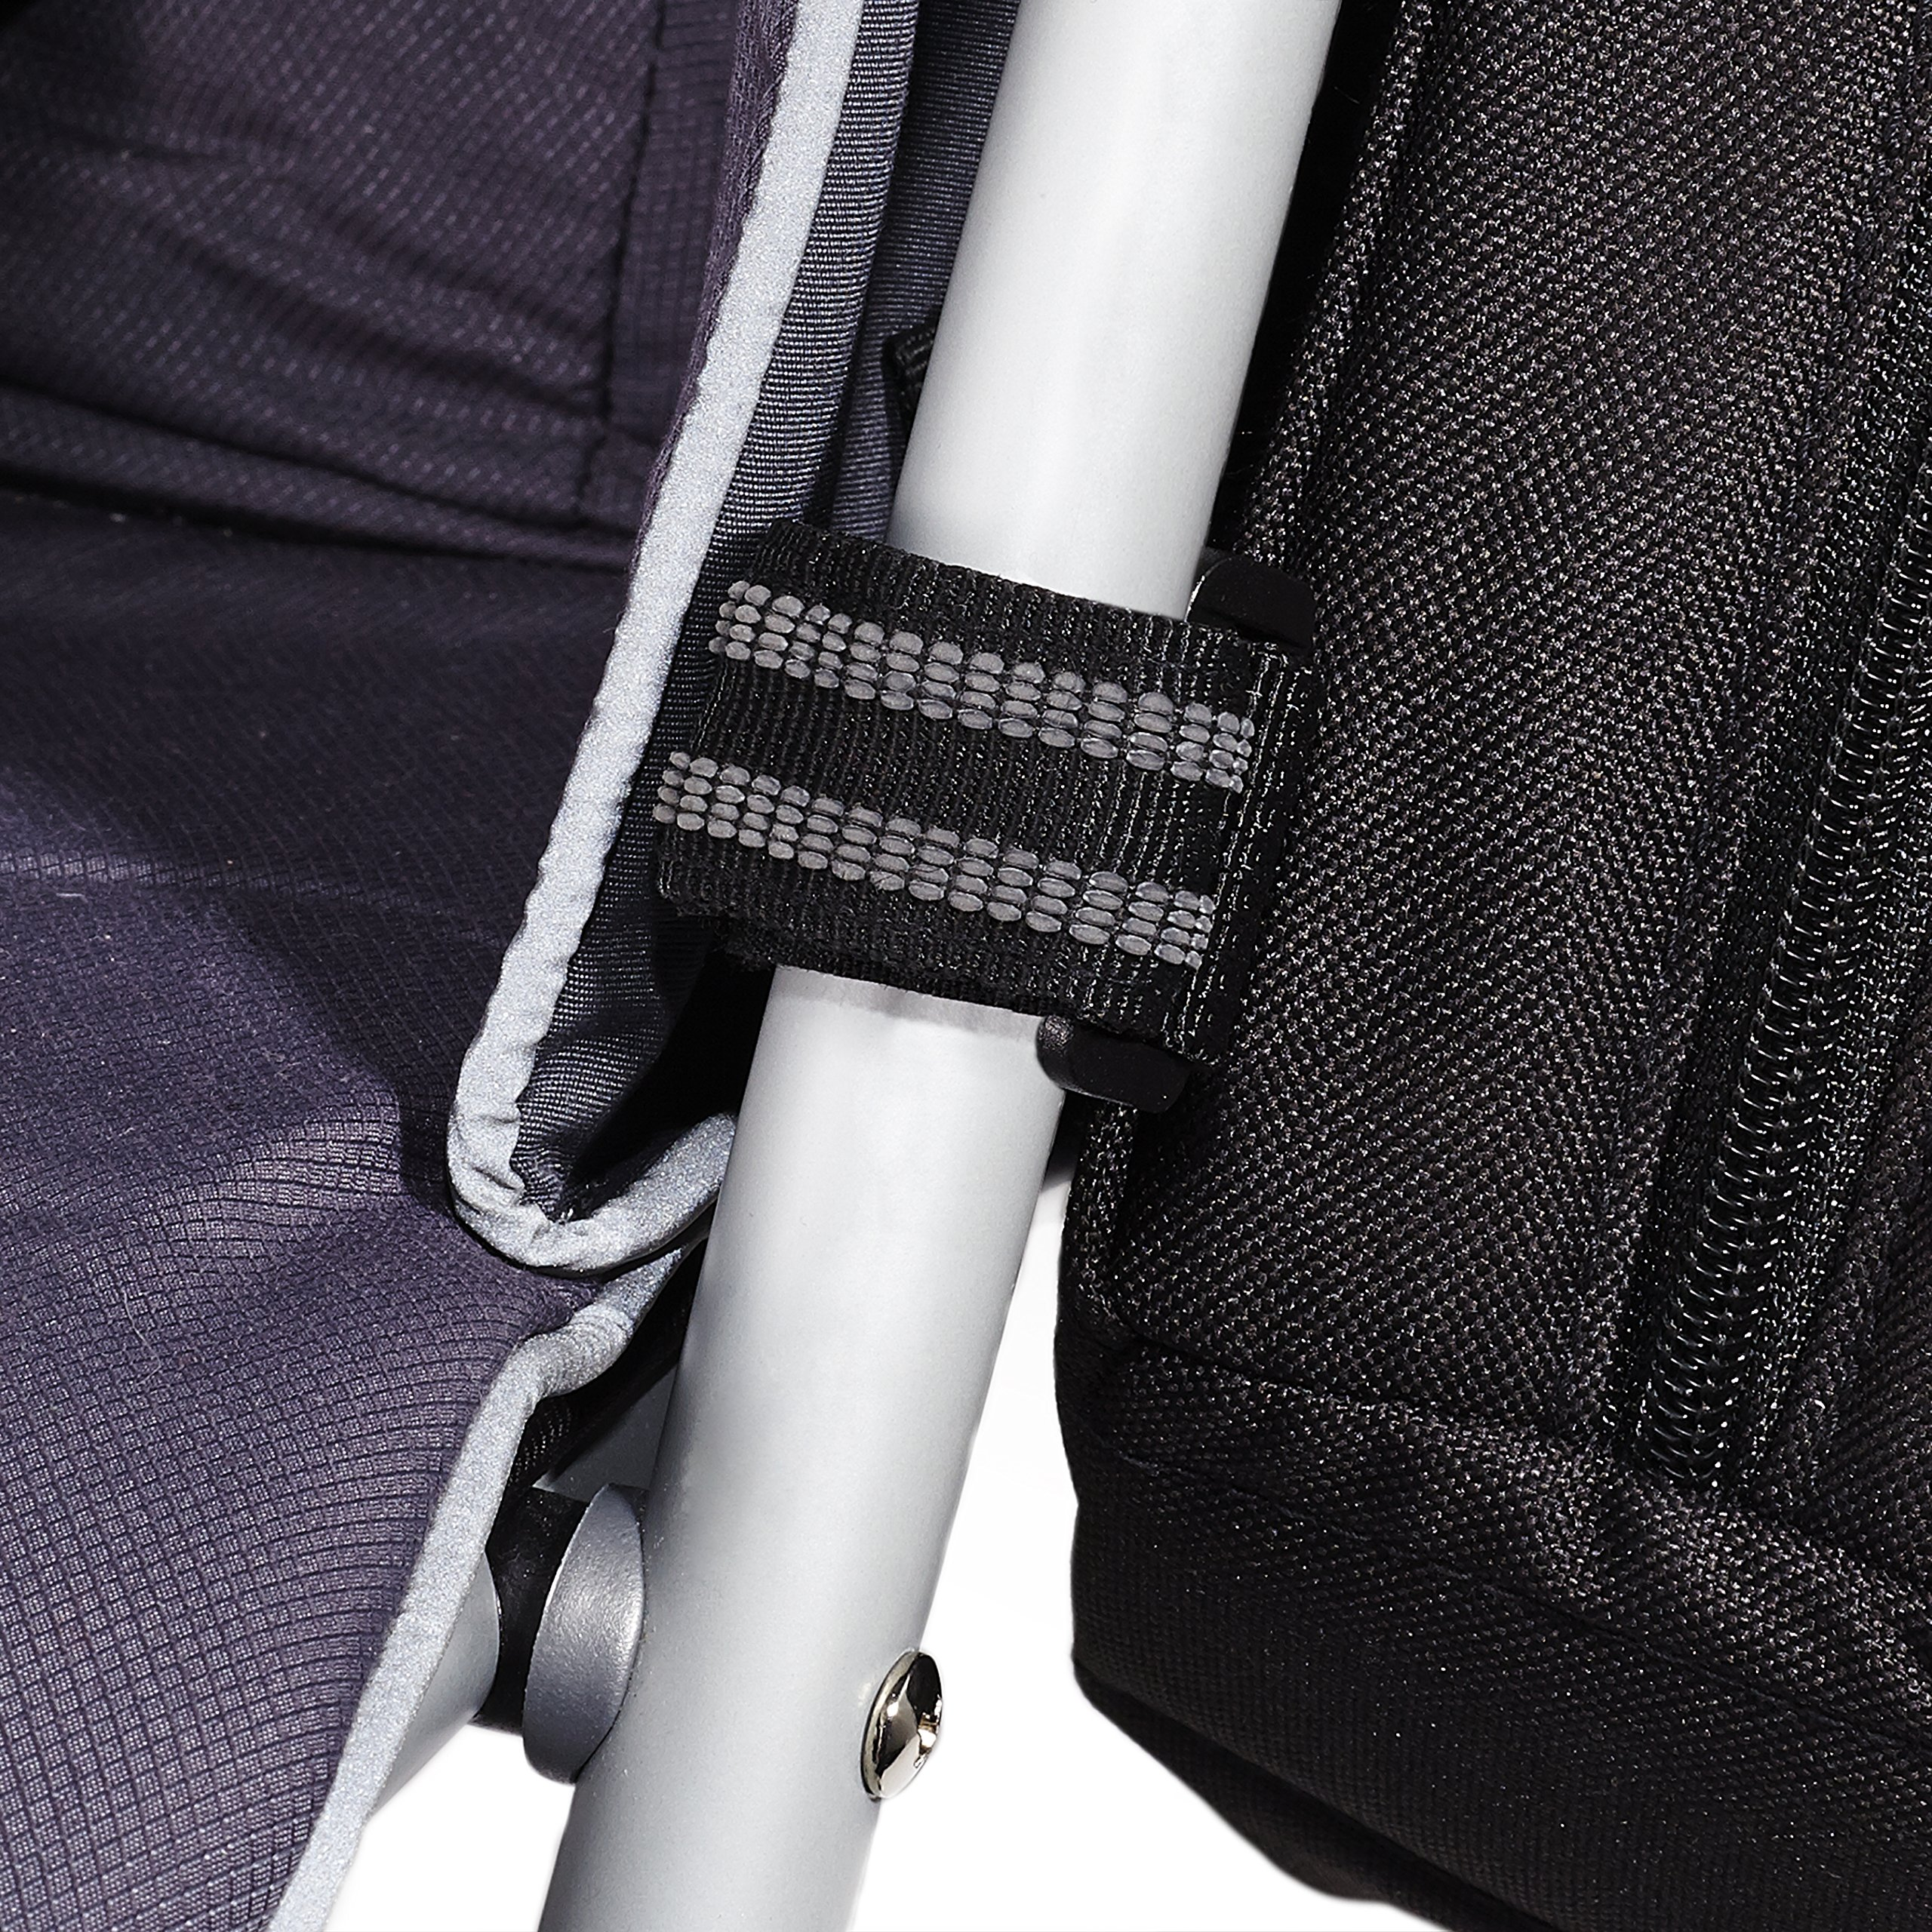 Skip Hop Grab and Go Attachable and Insulated Side Sling Stroller Saddle Bag and Organizer, 2 Pockets, Black by Skip Hop (Image #10)